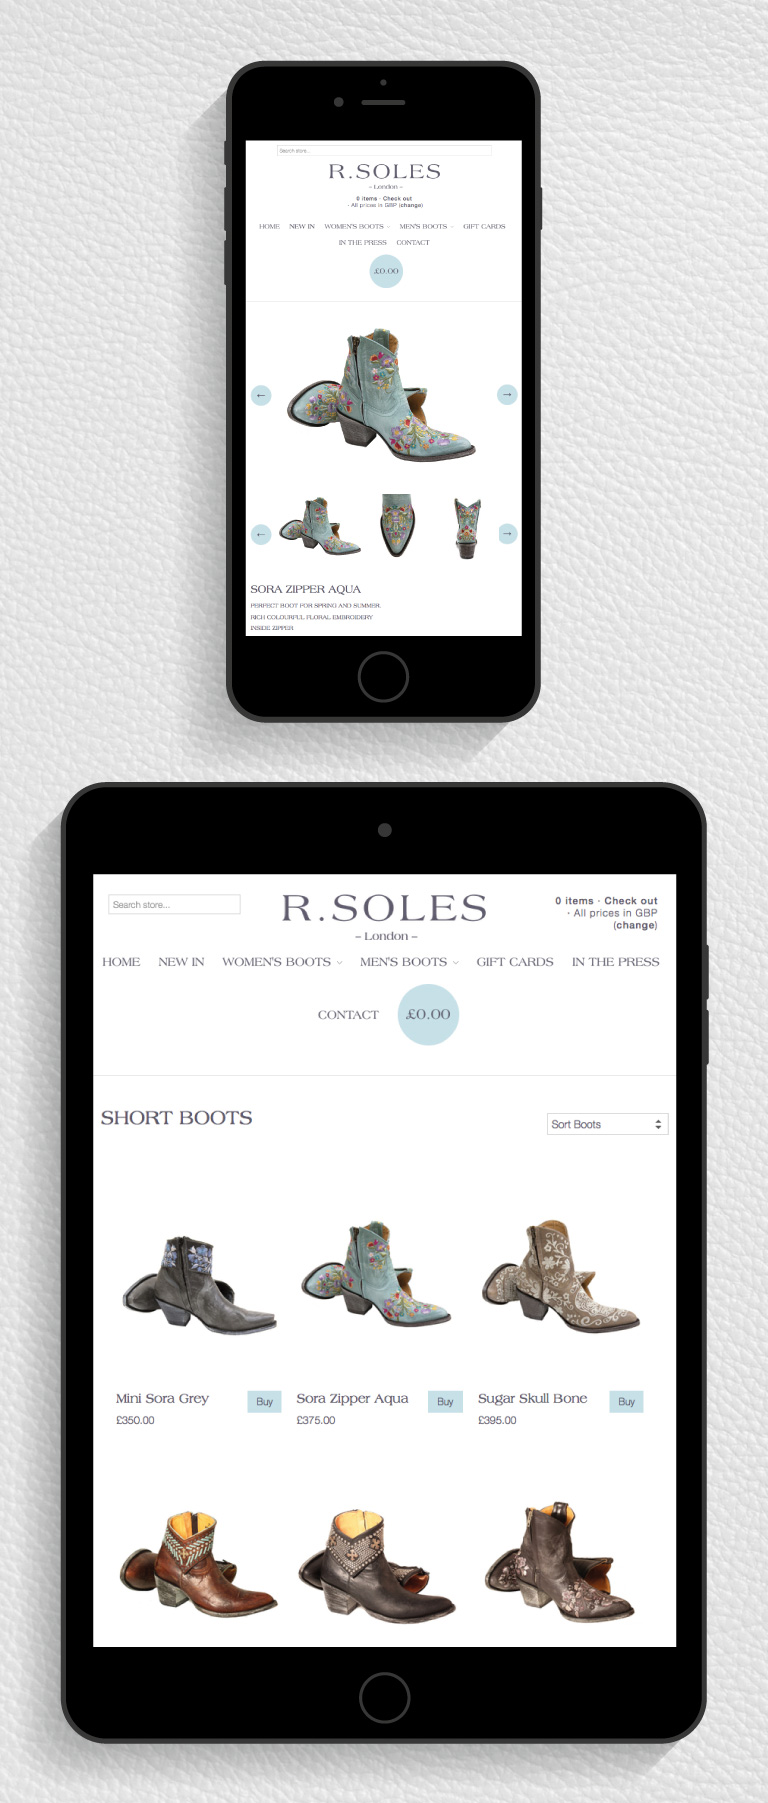 The R.Soles website on an iPad and iPhone - mobile